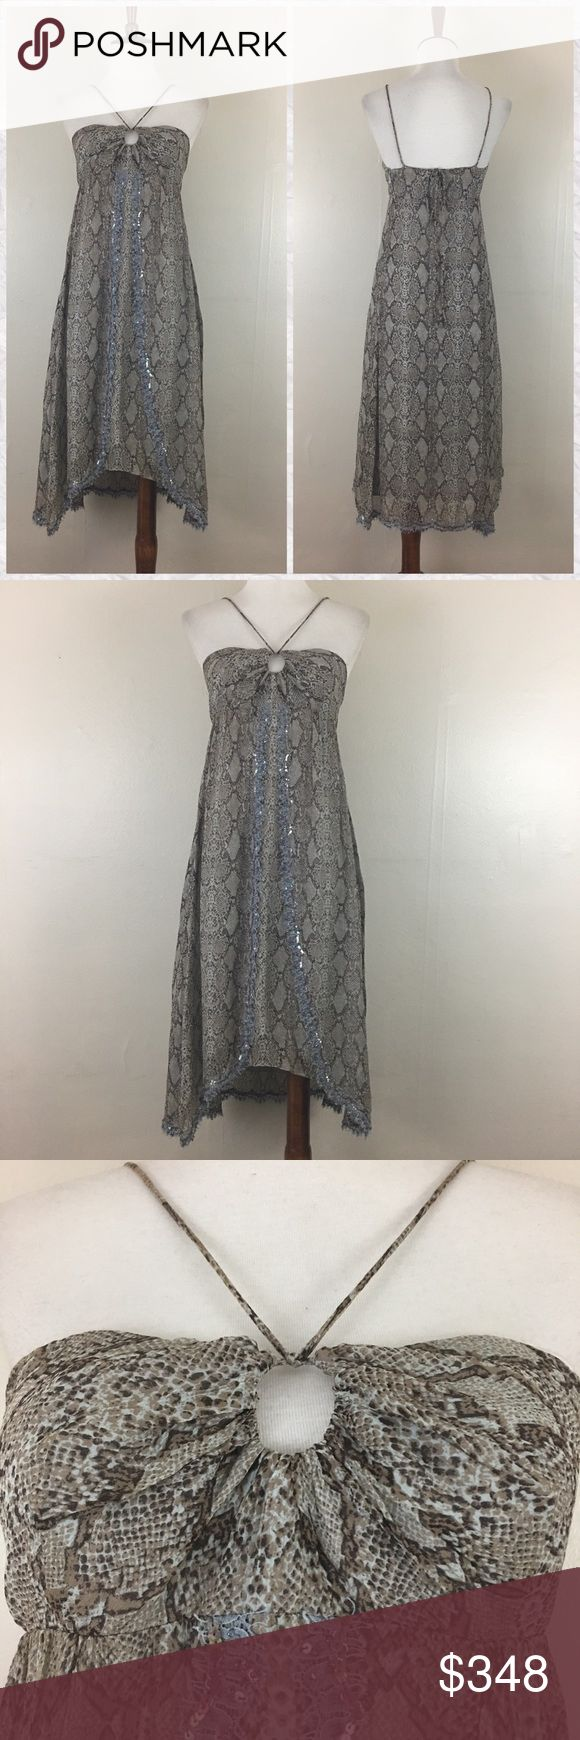 """Rebecca Taylor Silk Animal Print Sequin Dress *Condition: Excellent. No flaws to note. Tagged 4 but runs closer to size 2 in my opinion. Please see measurements!  *Keyhole Halter Strap neckline  *Empire Waist *Shark bite Front hem  *Closure: Side Zip  *Shell: 100% Silk  *Combo: 100% Nylon  *Lining: 100% Silk  *Care: Dry Clean  *Measurements are approx & taken lying flat *Bust: 30"""" *Empire Waist: 28"""" *Shoulder to Hem at the shortest point: 27.5""""  *Stored in non-smoking pet free home Rebecca…"""